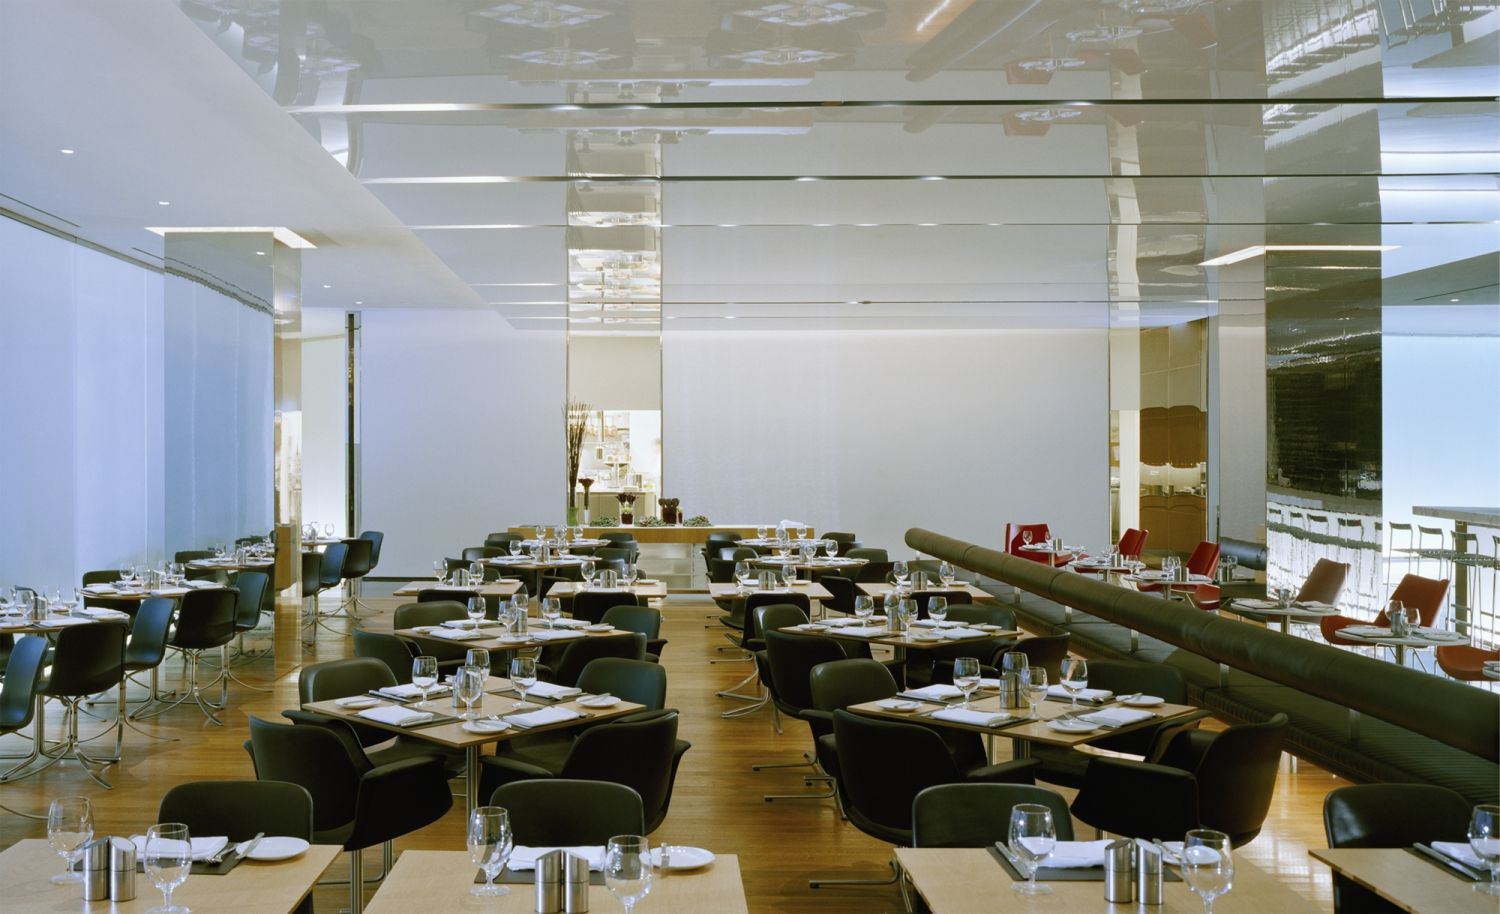 The Modern At Moma Bentel Bentel Architects Planners A I A Bar Room Modern Restaurant New York City Architecture